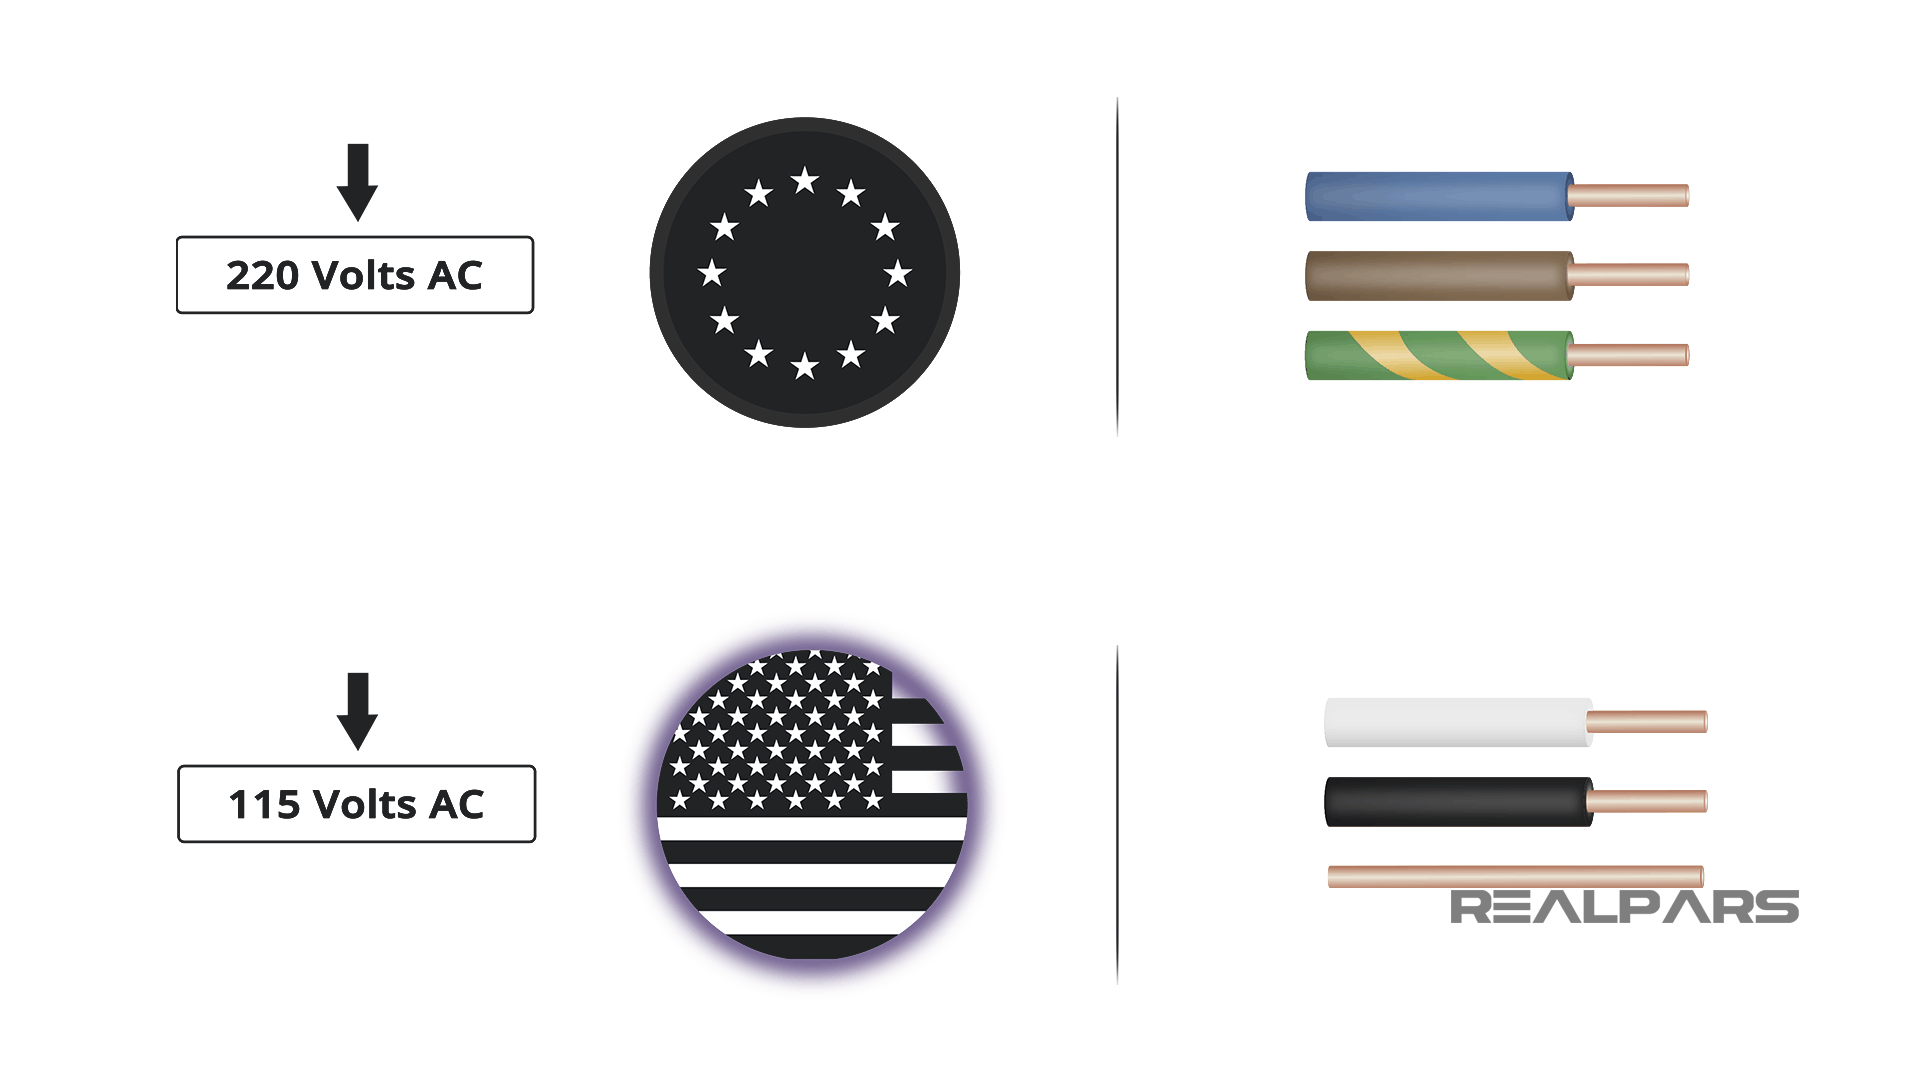 Circuit wiring in the European Union and North America